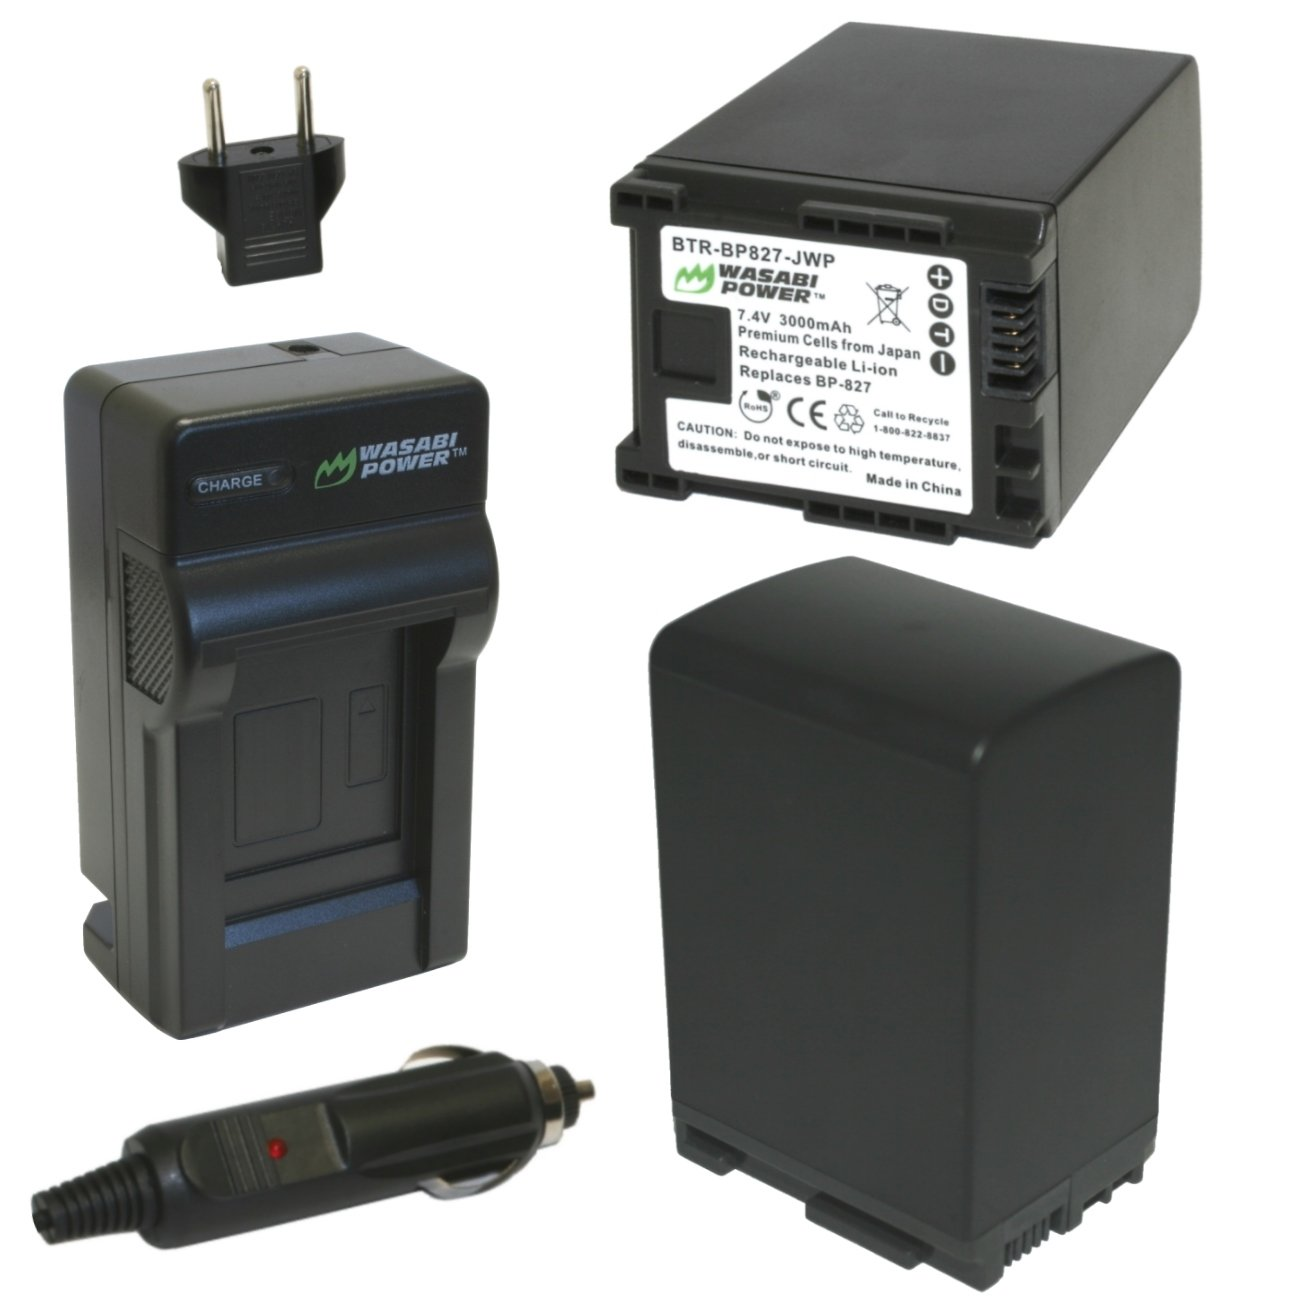 Wasabi Power Battery (2-Pack) and Charger for Canon BP-827 and Canon VIXIA HF20, HF21, HF200, HF G10, HF G20, HF M30, HF M31, HF M32, HF M40, HF M41, HF M300, HF M400, HF S10, HF S11, HF S20, HF S21, HF S30, HF S100, HF S200, HG20, HG21, XA10 by Wasabi Power